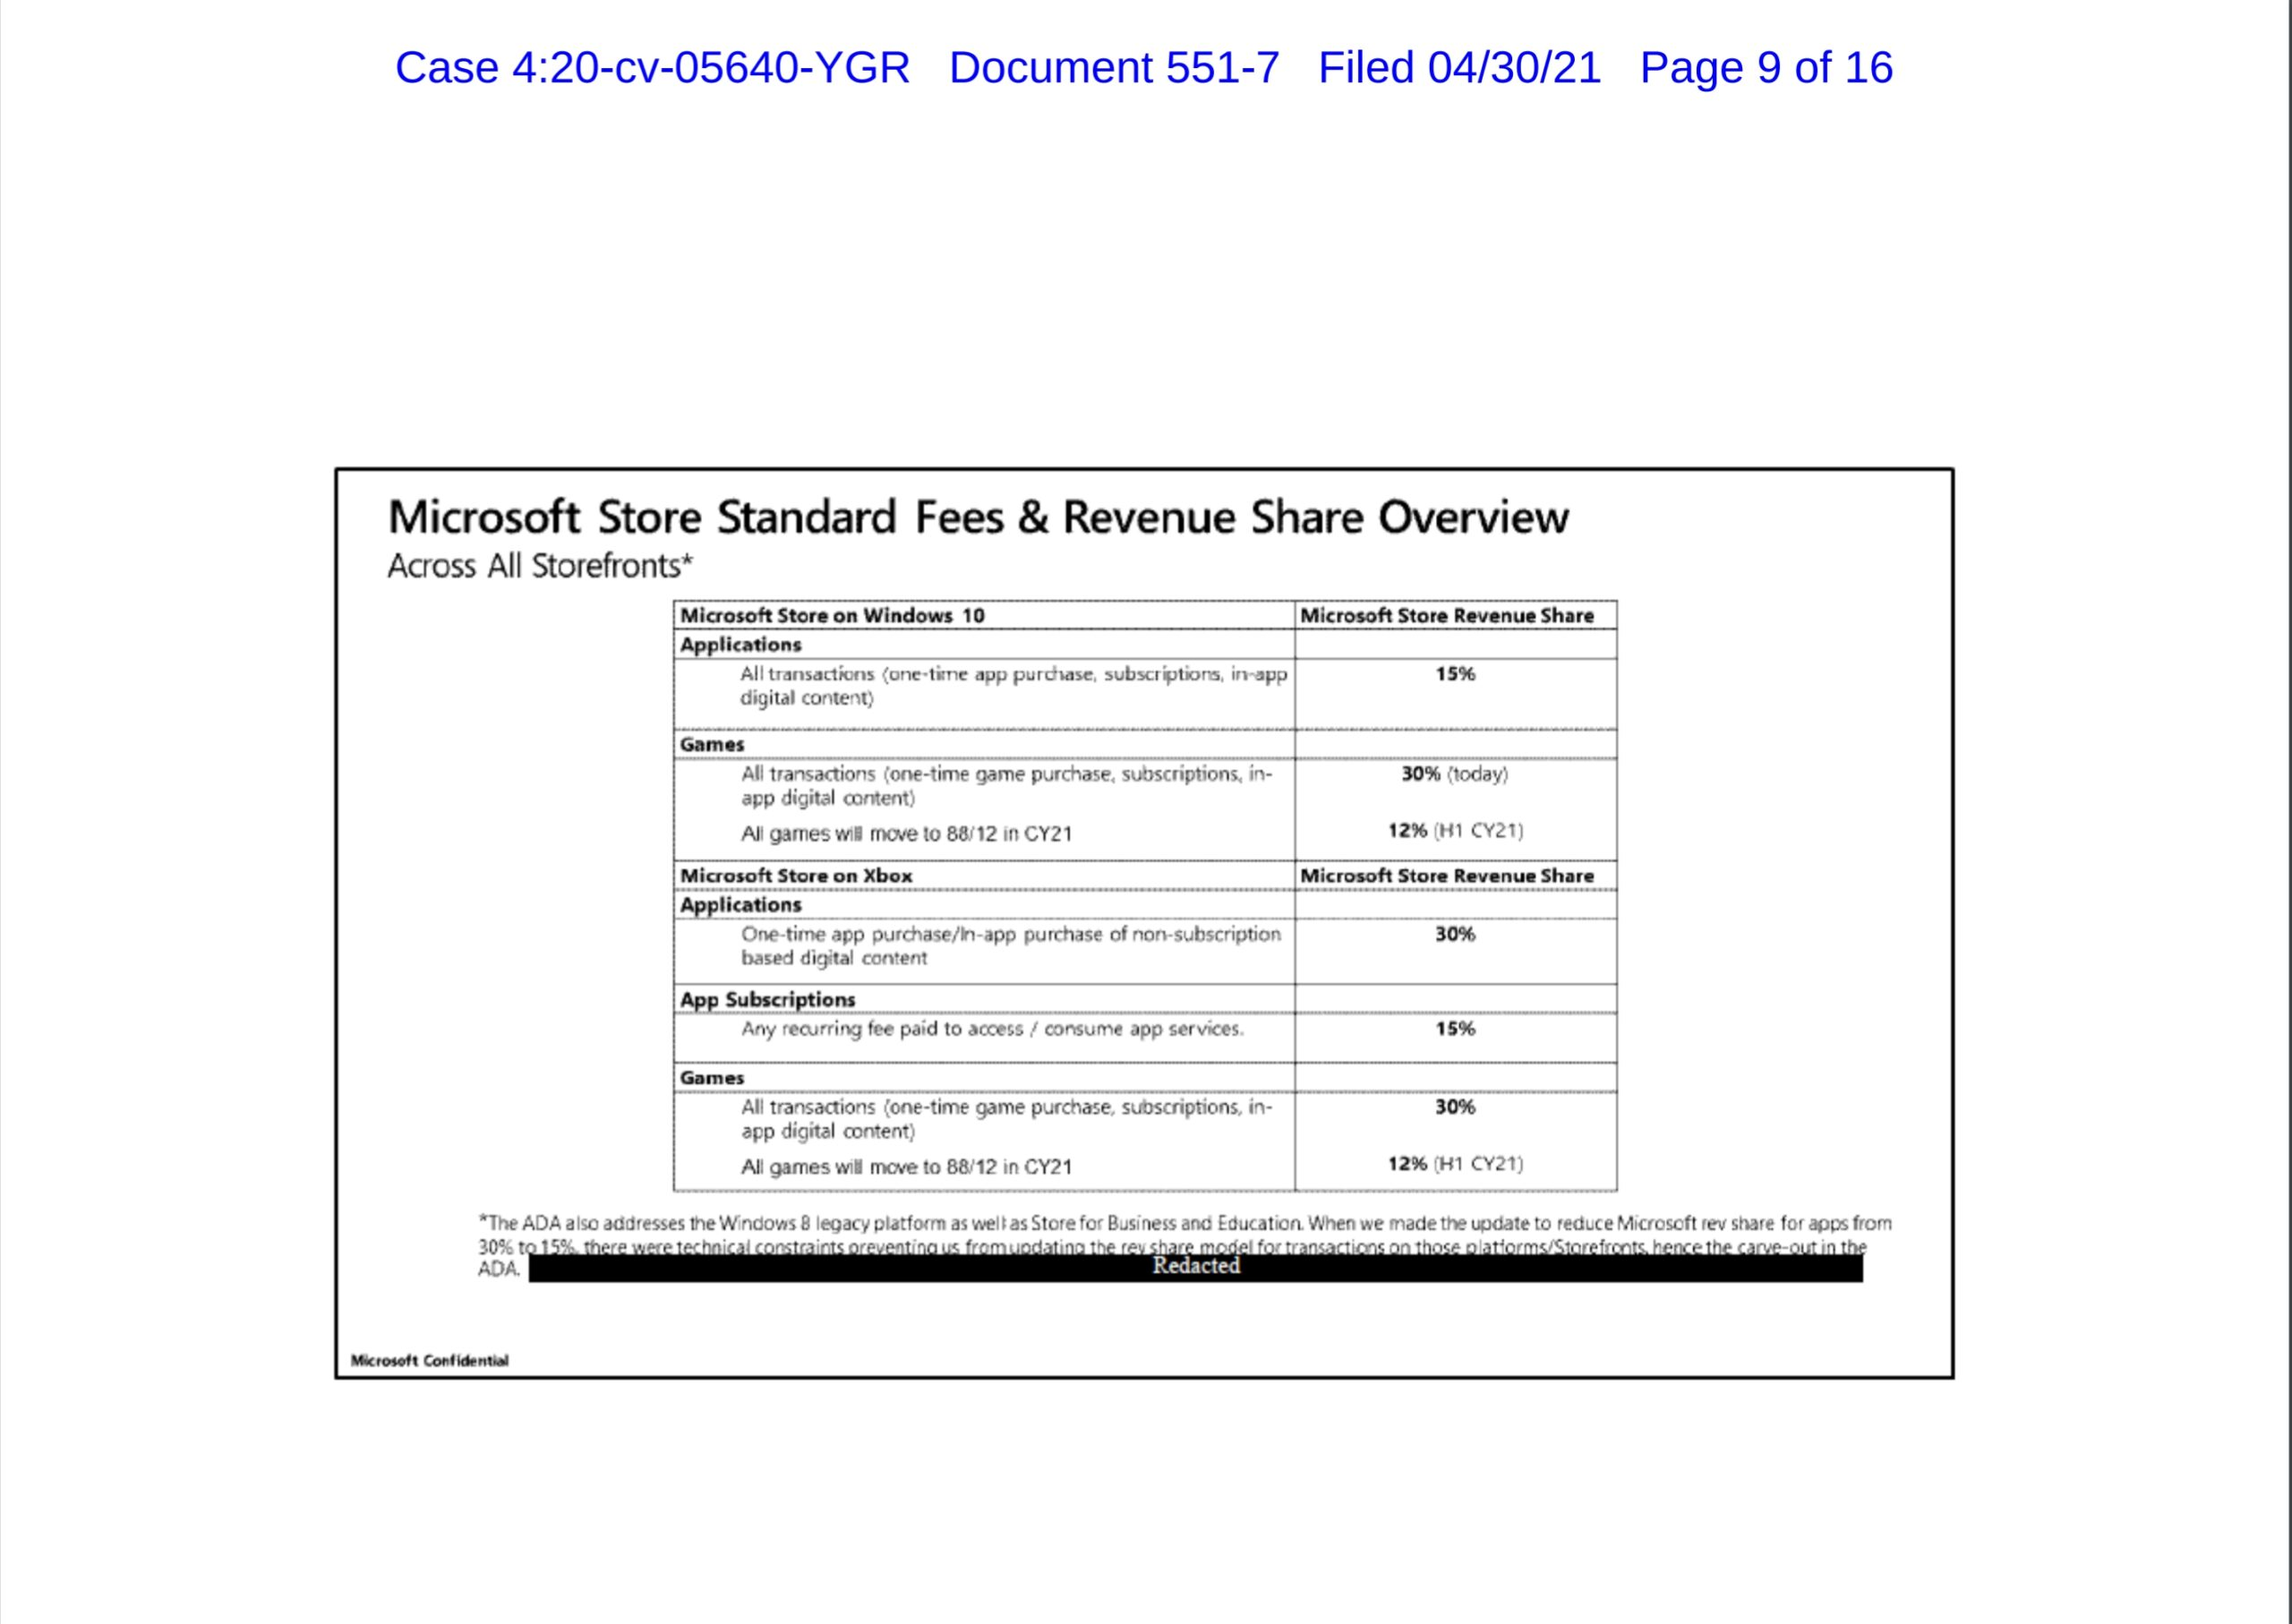 microsoft_document_1-scaled.jpg